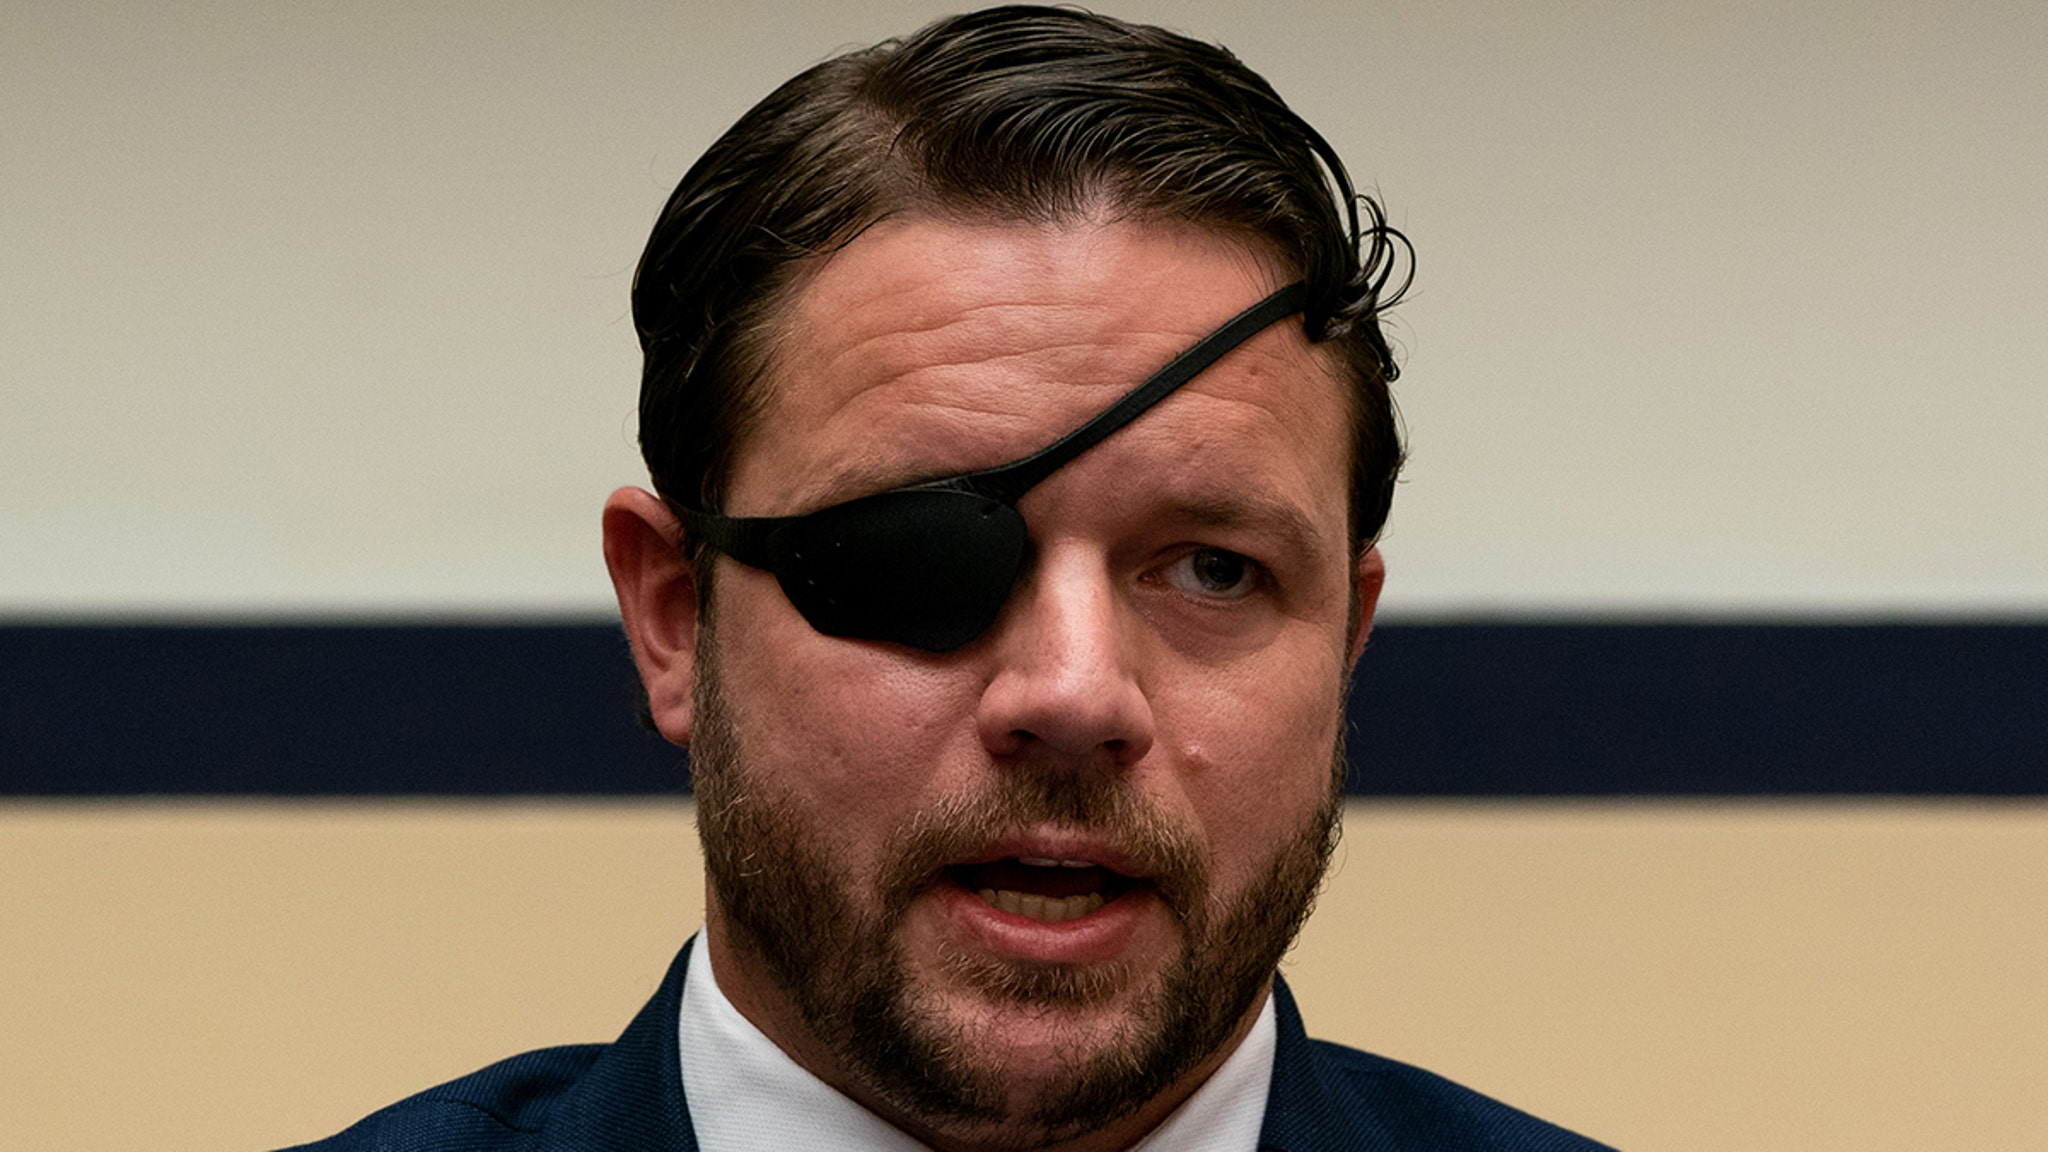 Rep. Dan Crenshaw Says He's Blind for a Month Due to Emergency Surgery thumbnail